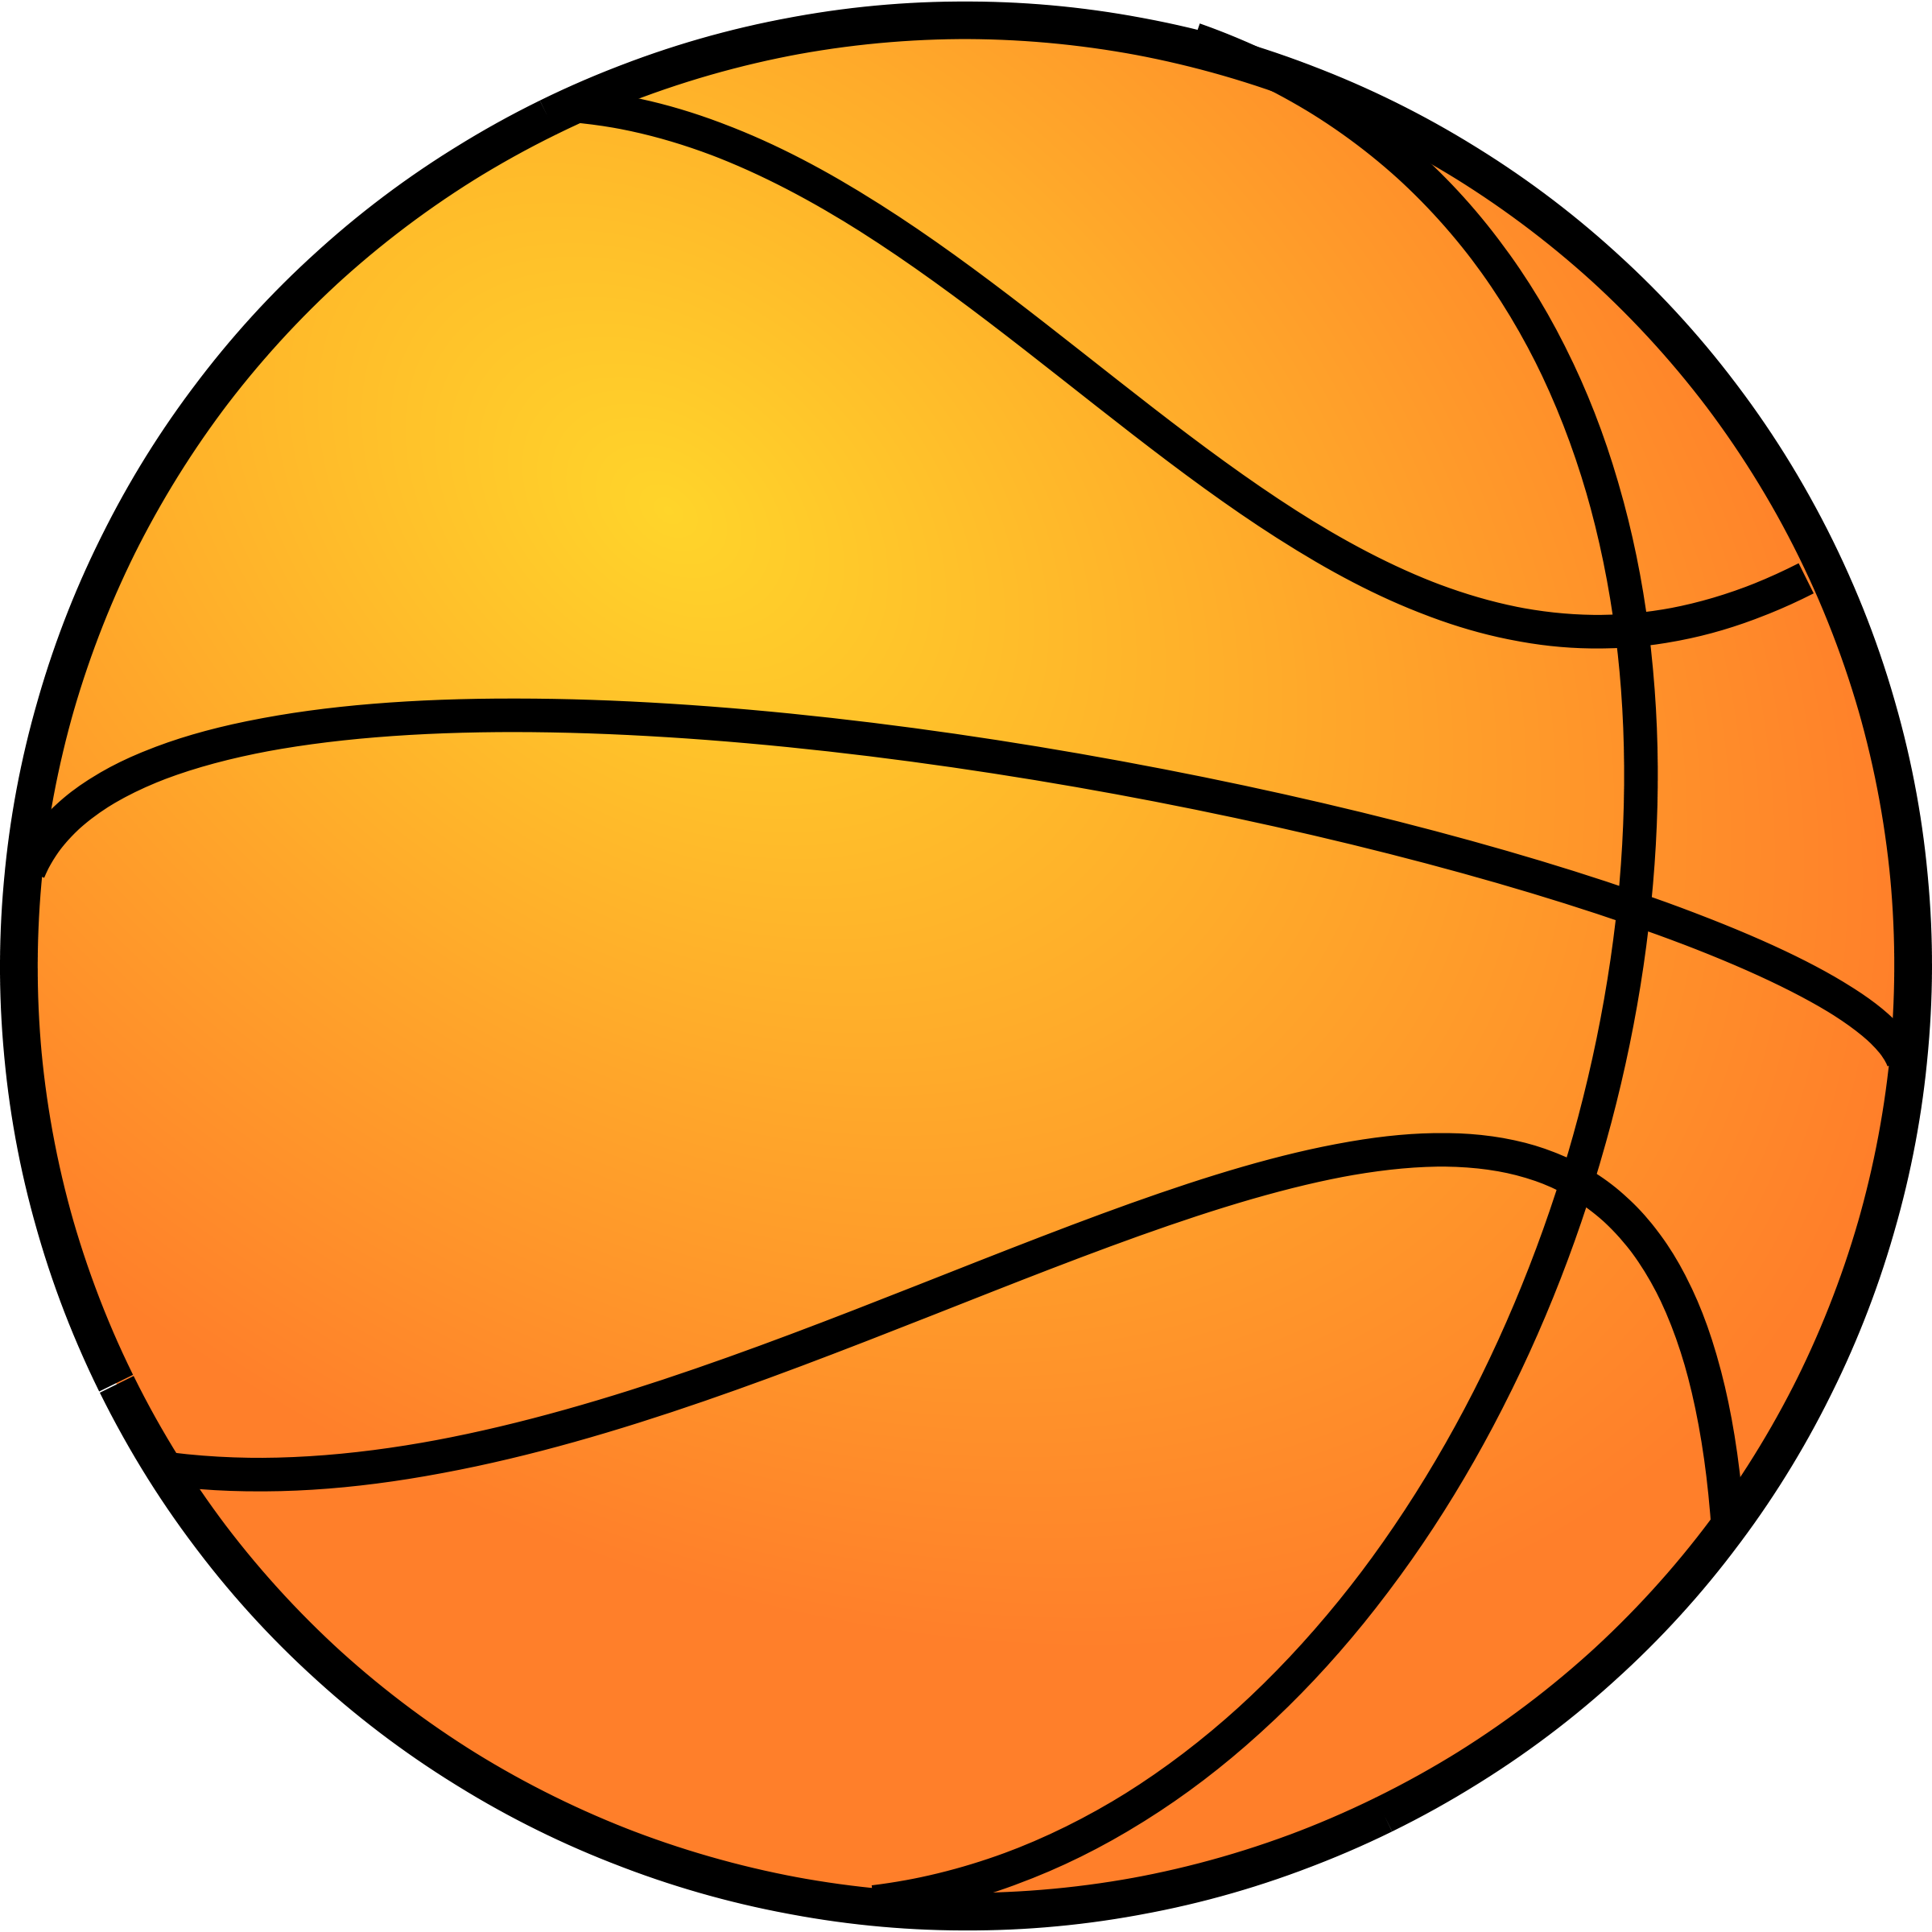 basketball-clipart-basketball-20clip-20art-Gioppino_Basketball.png